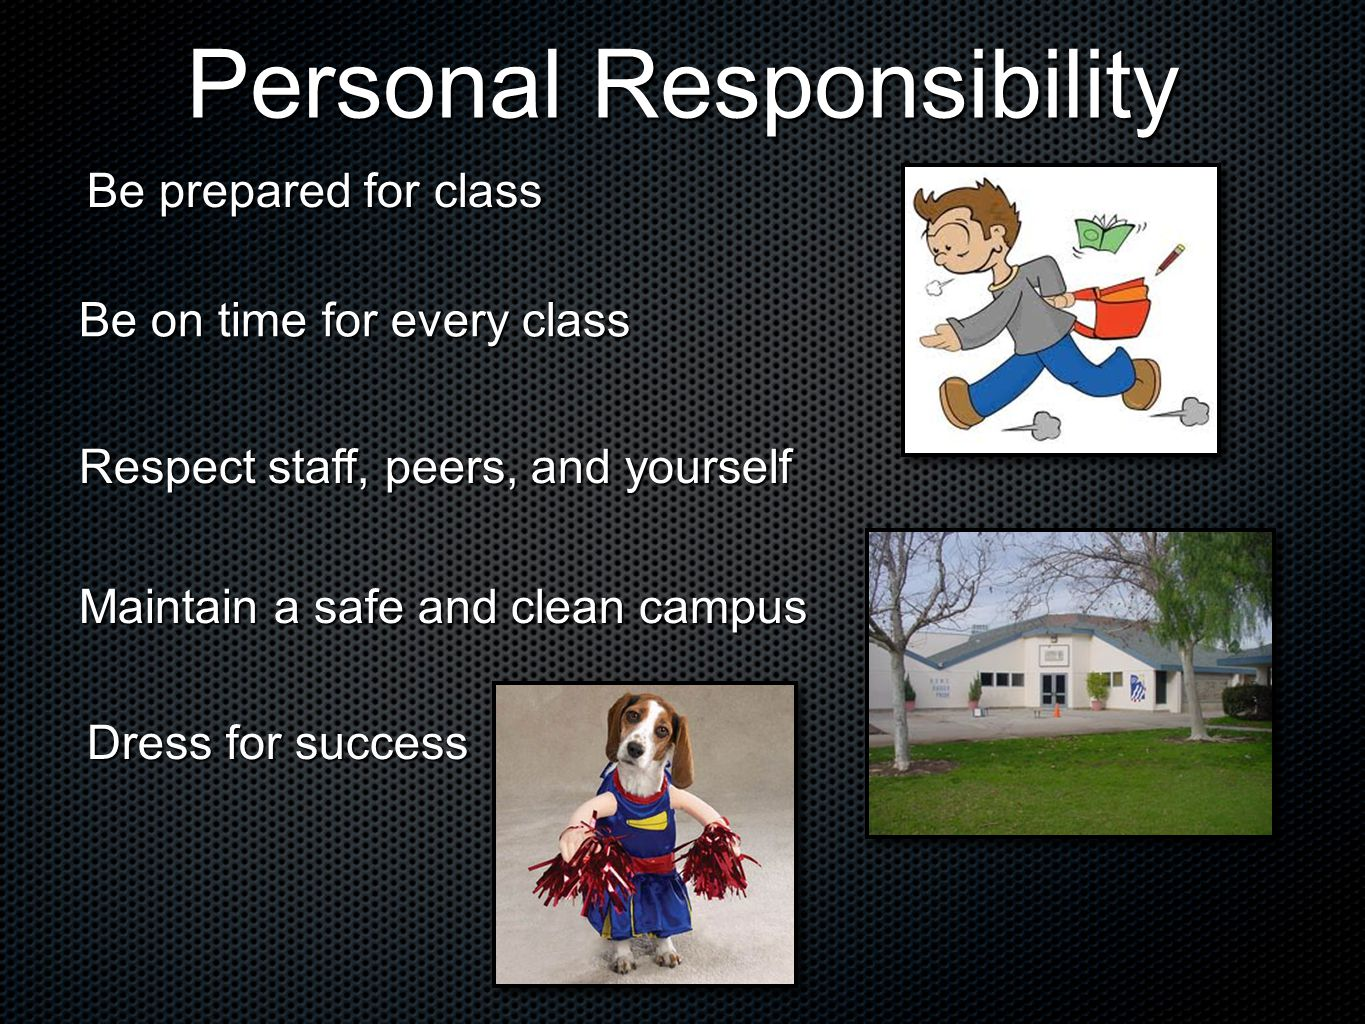 Personal Responsibility Be prepared for class Be on time for every class Respect staff, peers, and yourself Maintain a safe and clean campus Dress for